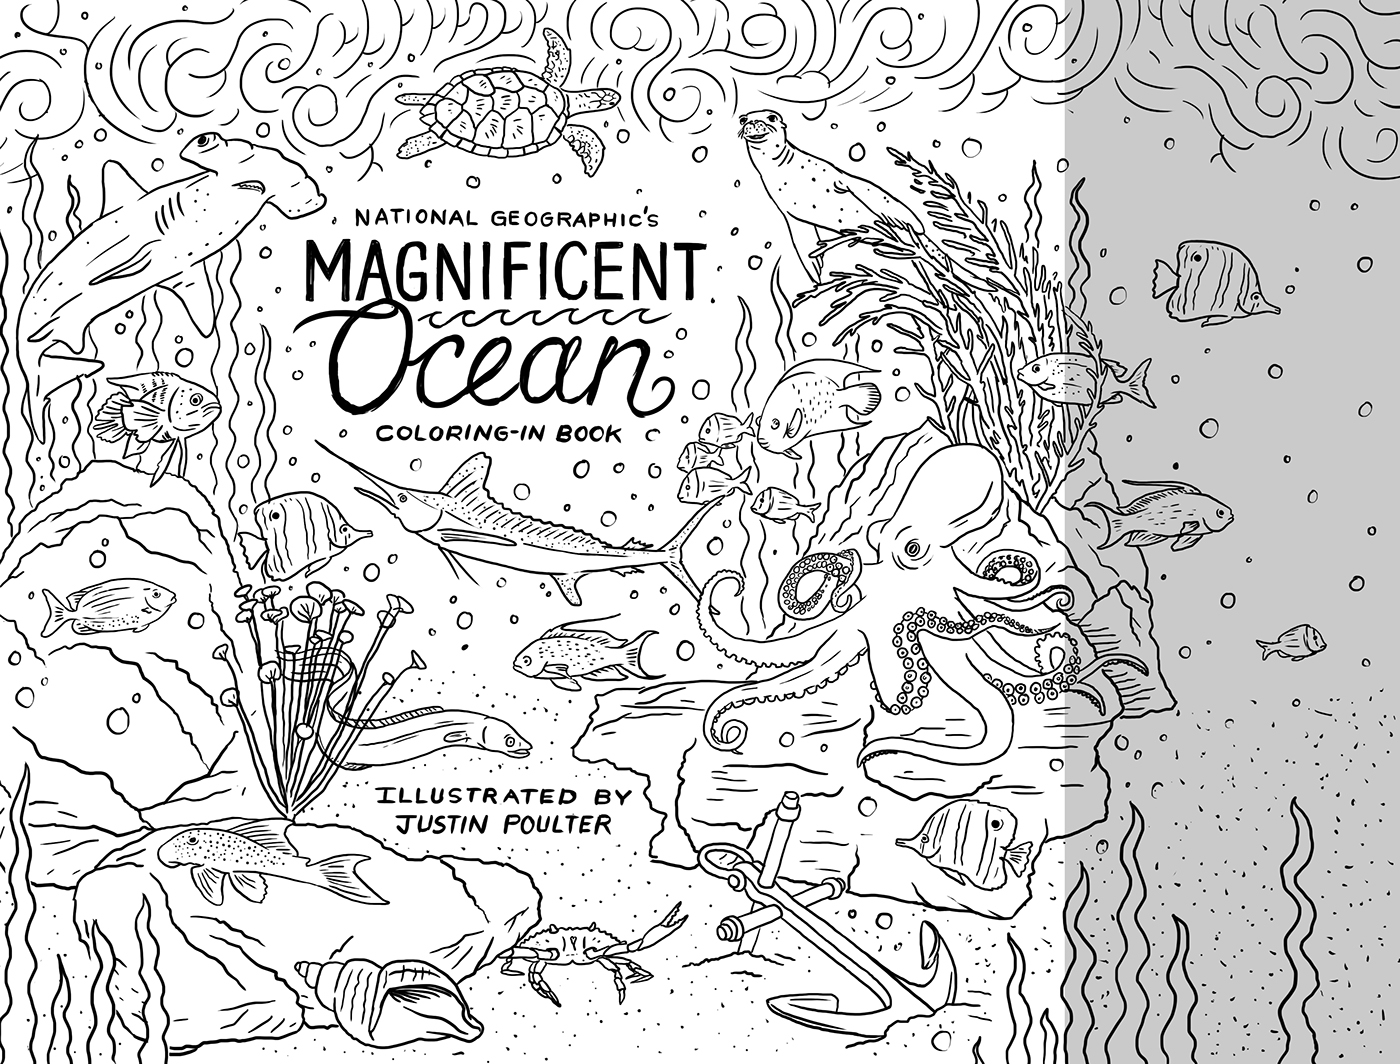 coloring book national geographic animals magnificent ocean justin poulter adult coloring book Nature